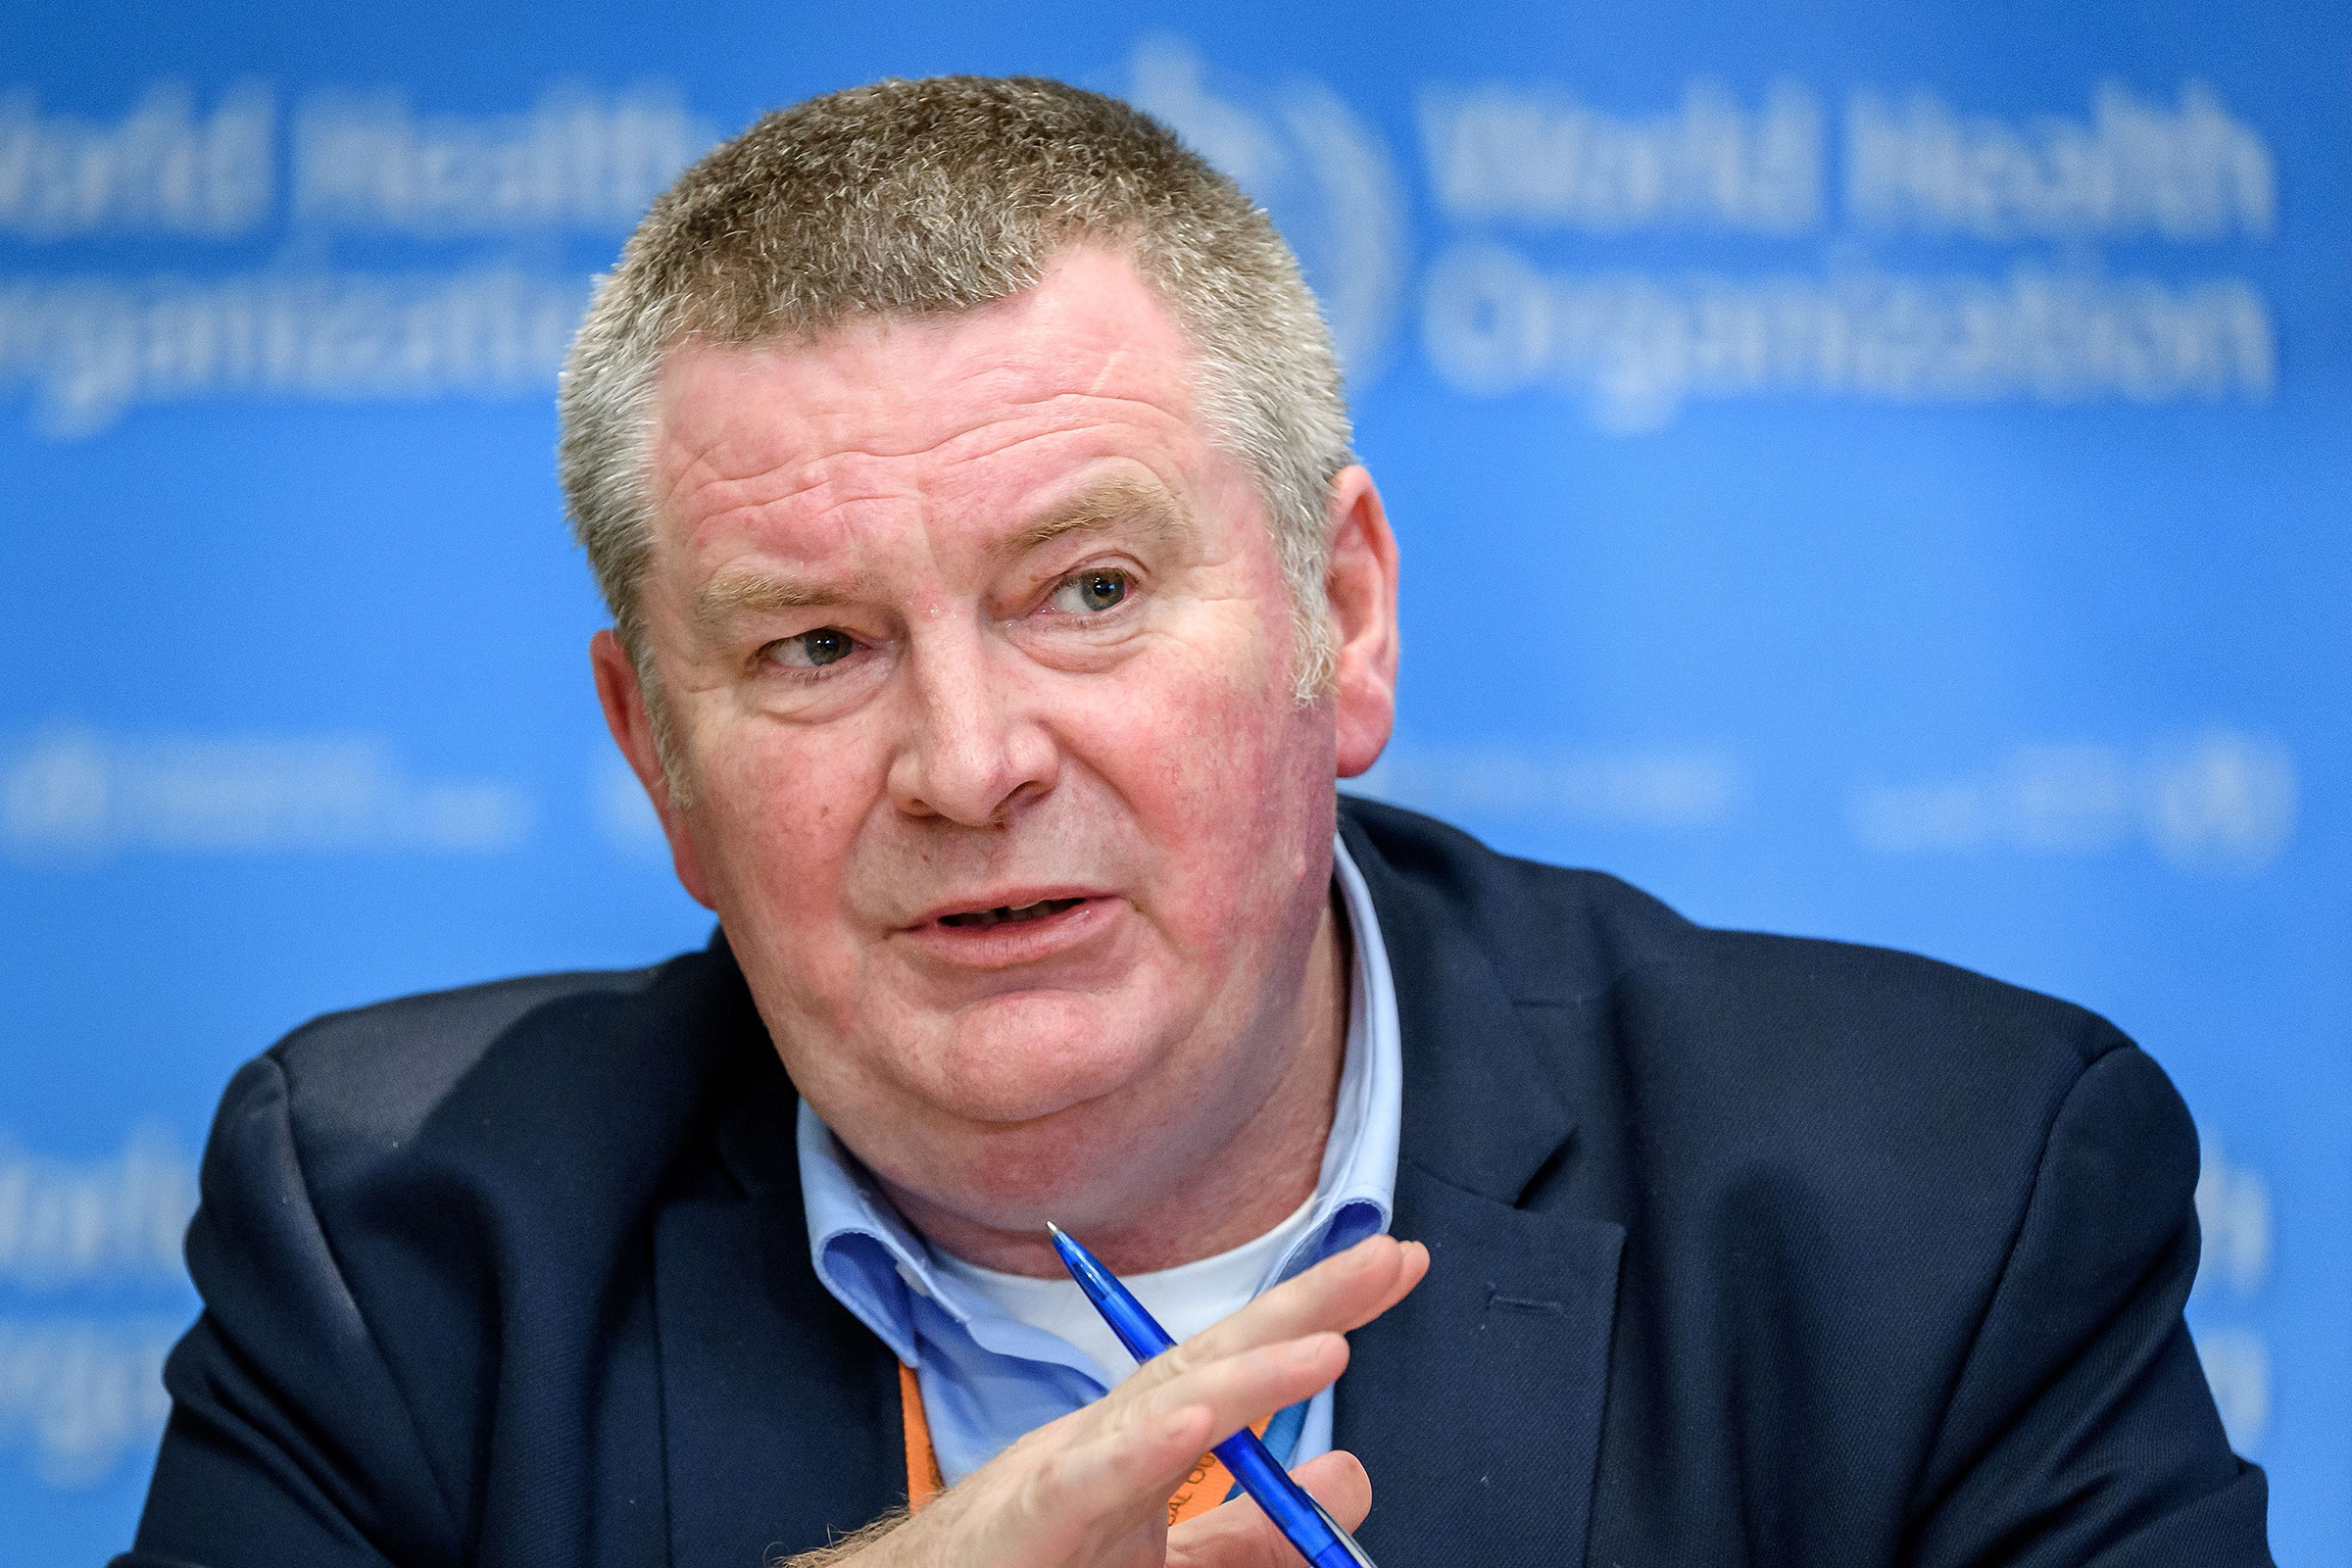 World Health Organization Health Emergencies Programme Director Michael Ryan talks during a Covid-19 press briefing at the WHO heardquaters in Geneva, on March 11.